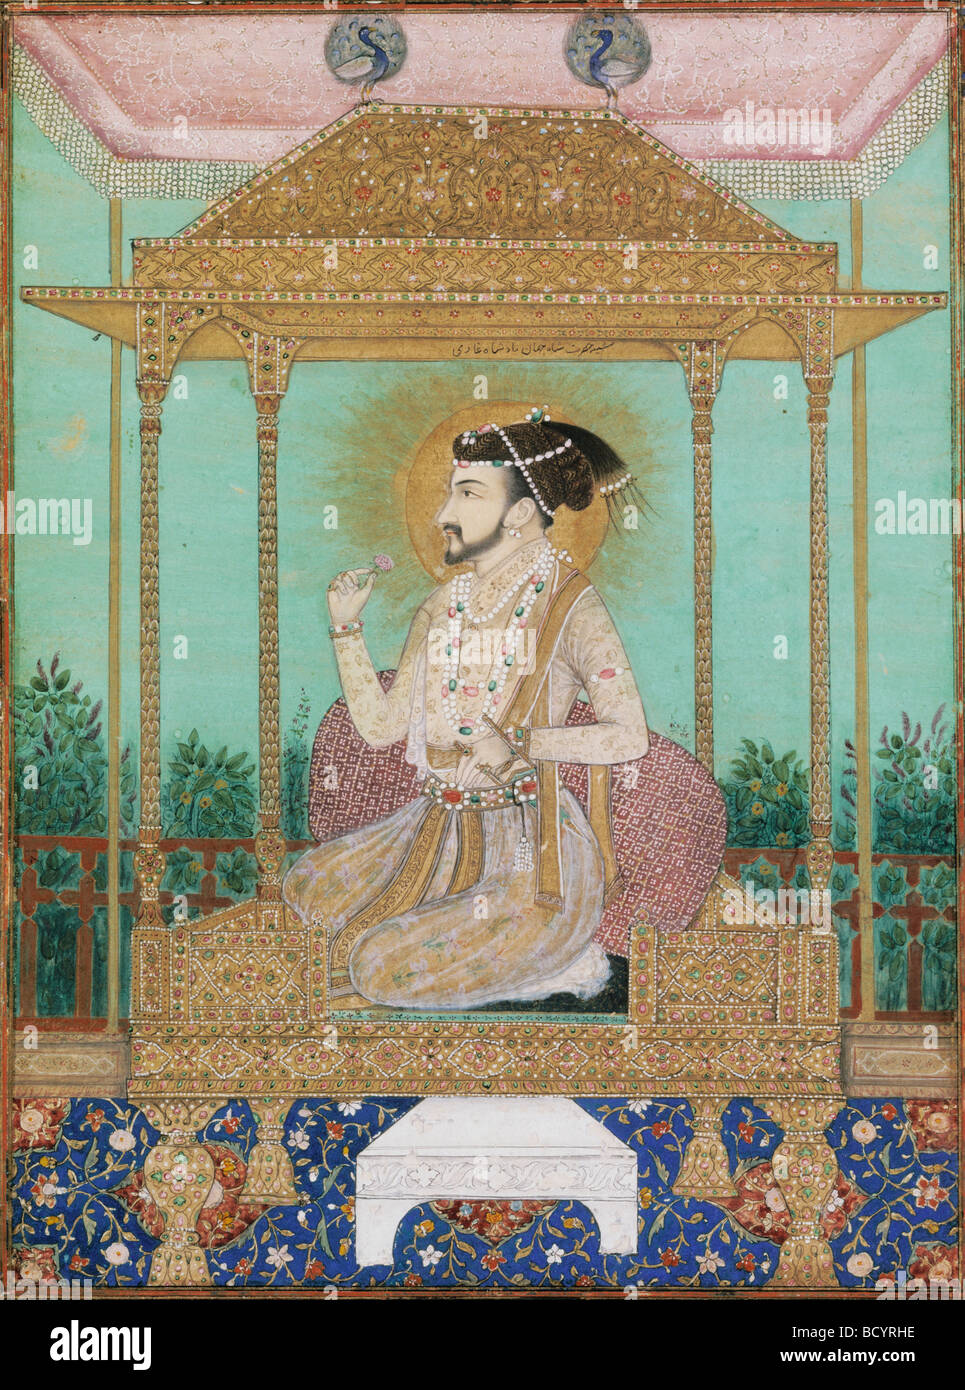 Shah Jahan seated on Peacock Throne, Mughal Style. India, early 17th century Stock Photo